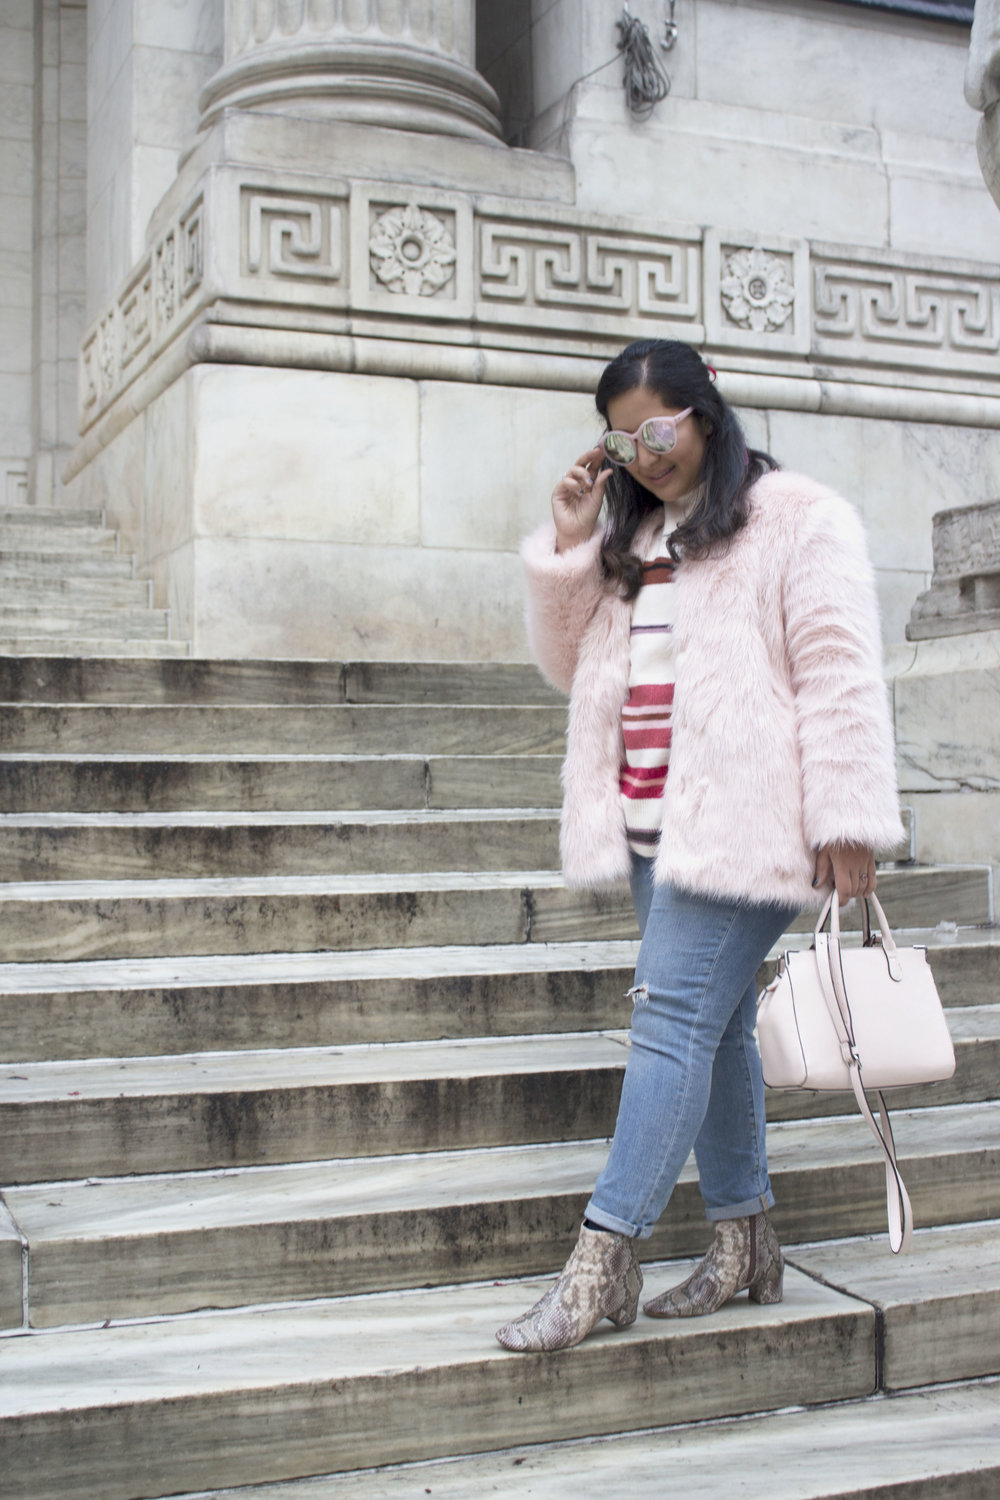 Krity S x Loft Stripe Sweater x Pink Faux Fur x Winter Outfit2.jpg